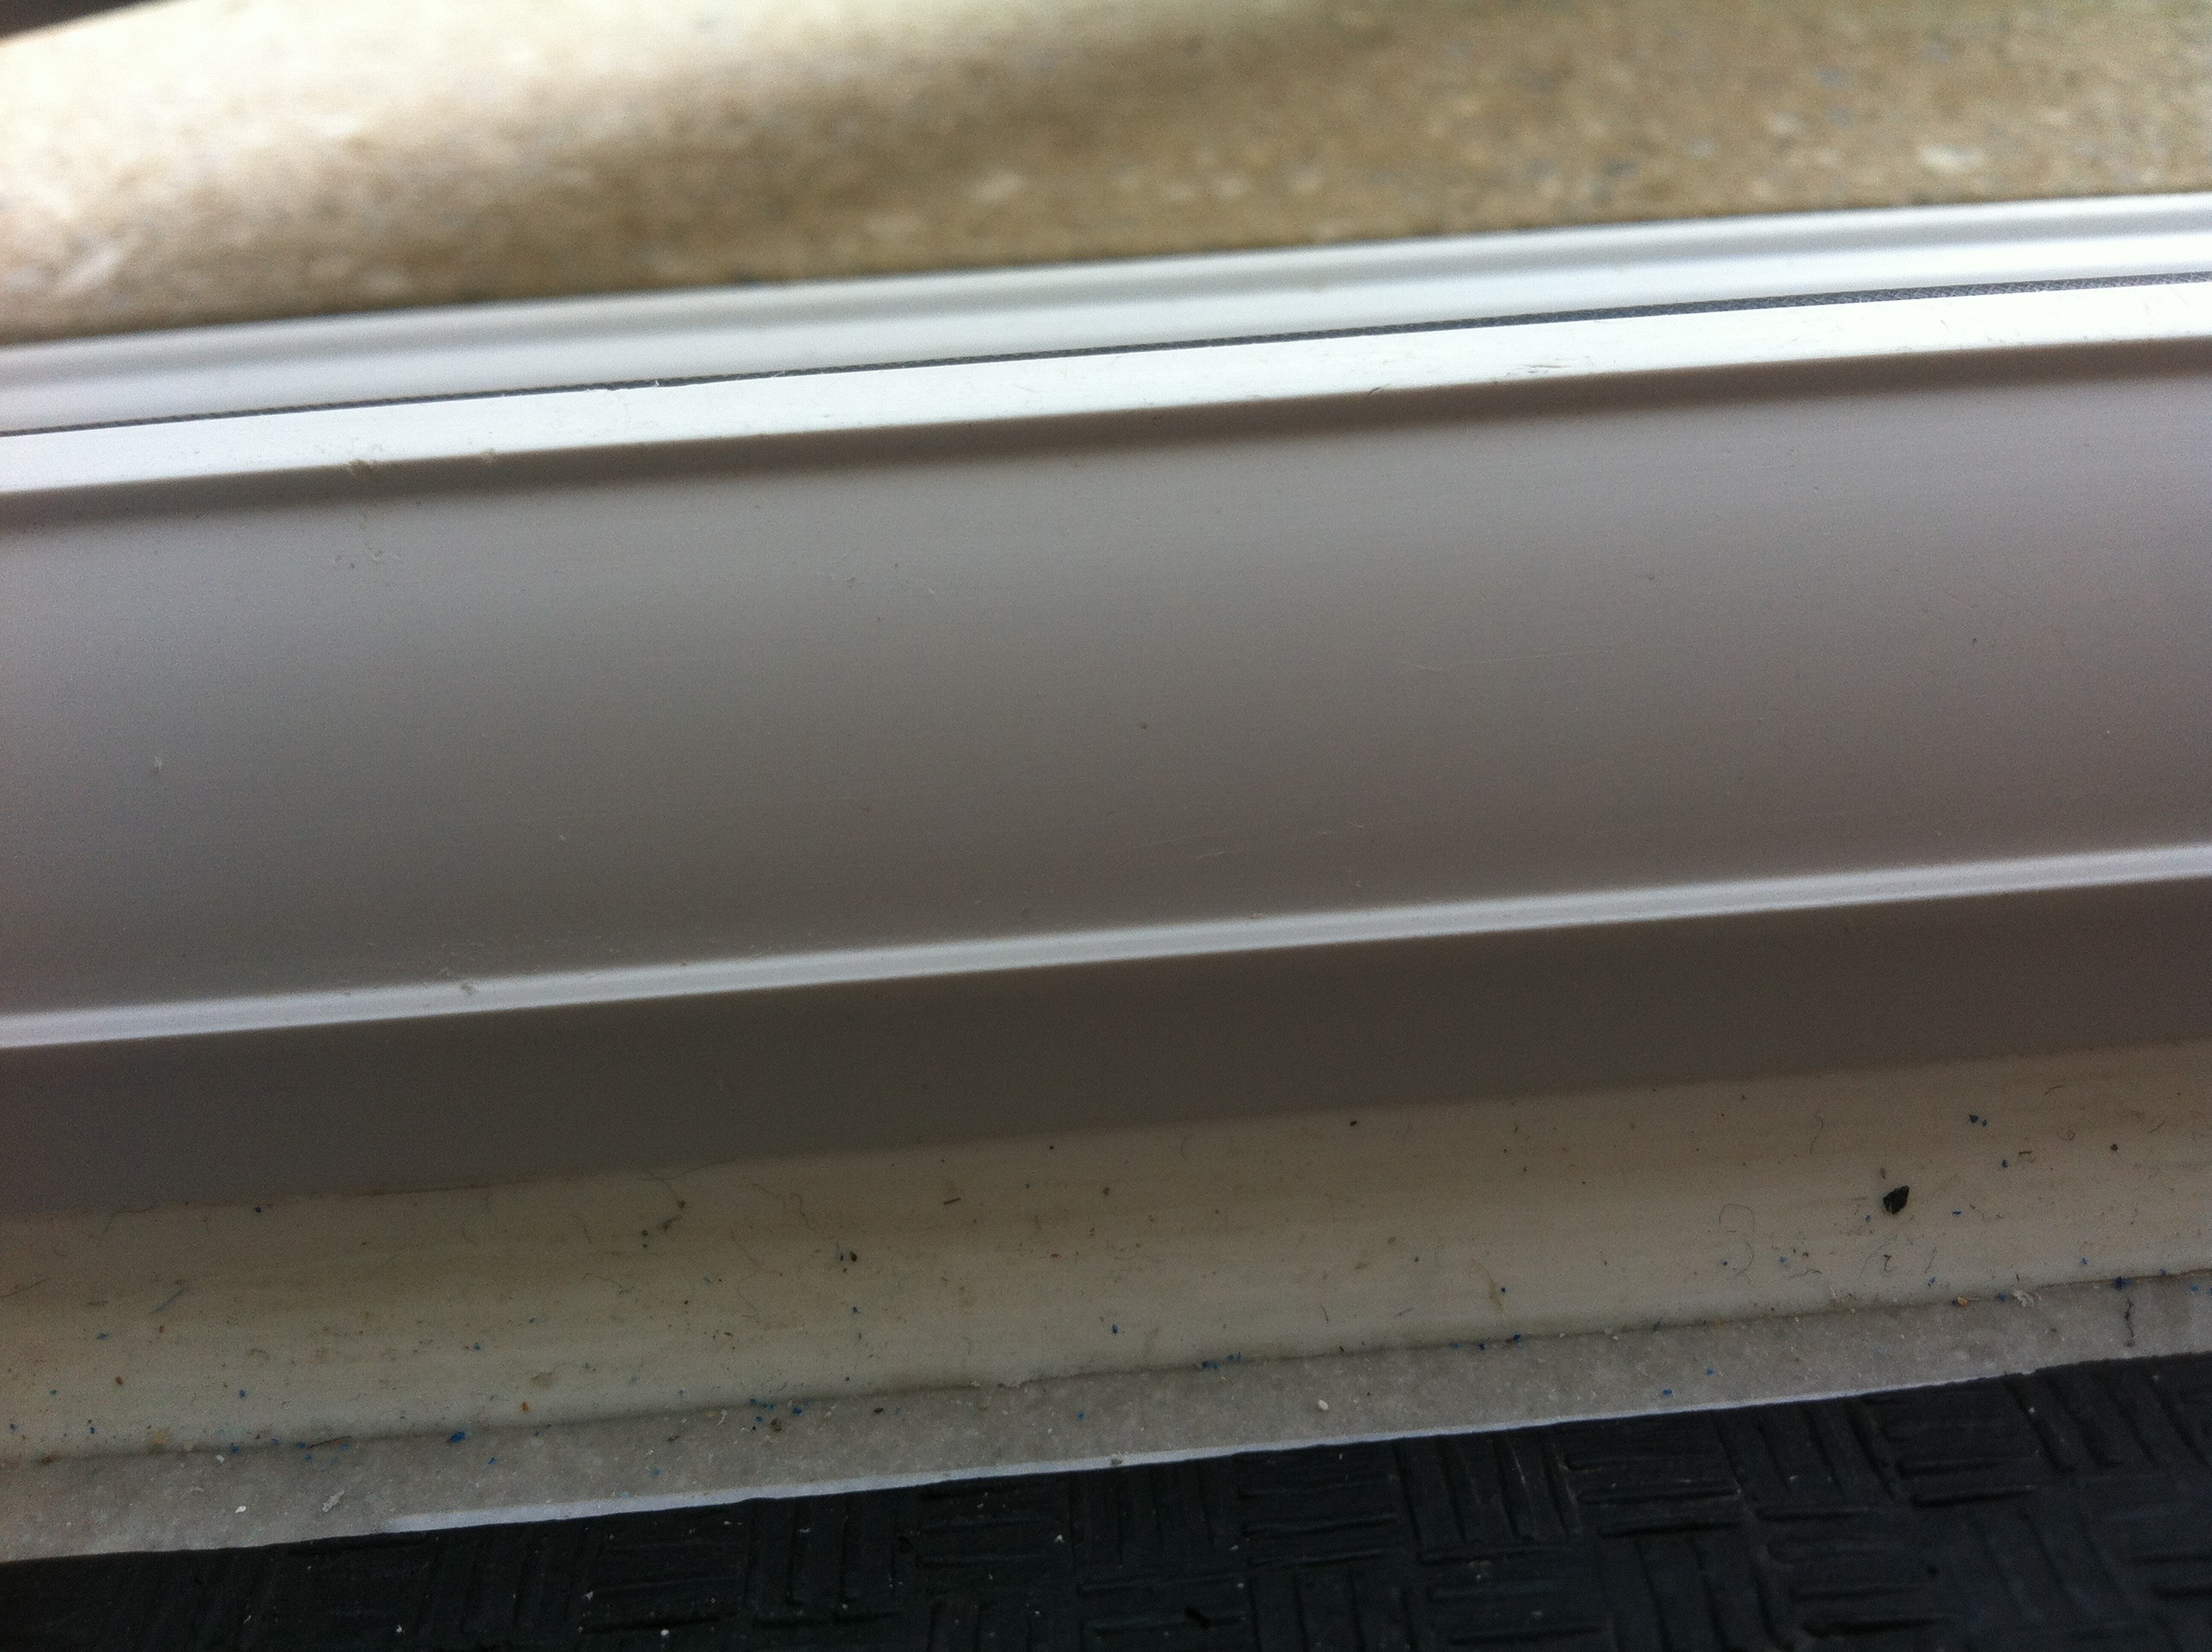 uPvc damaged window frame - After